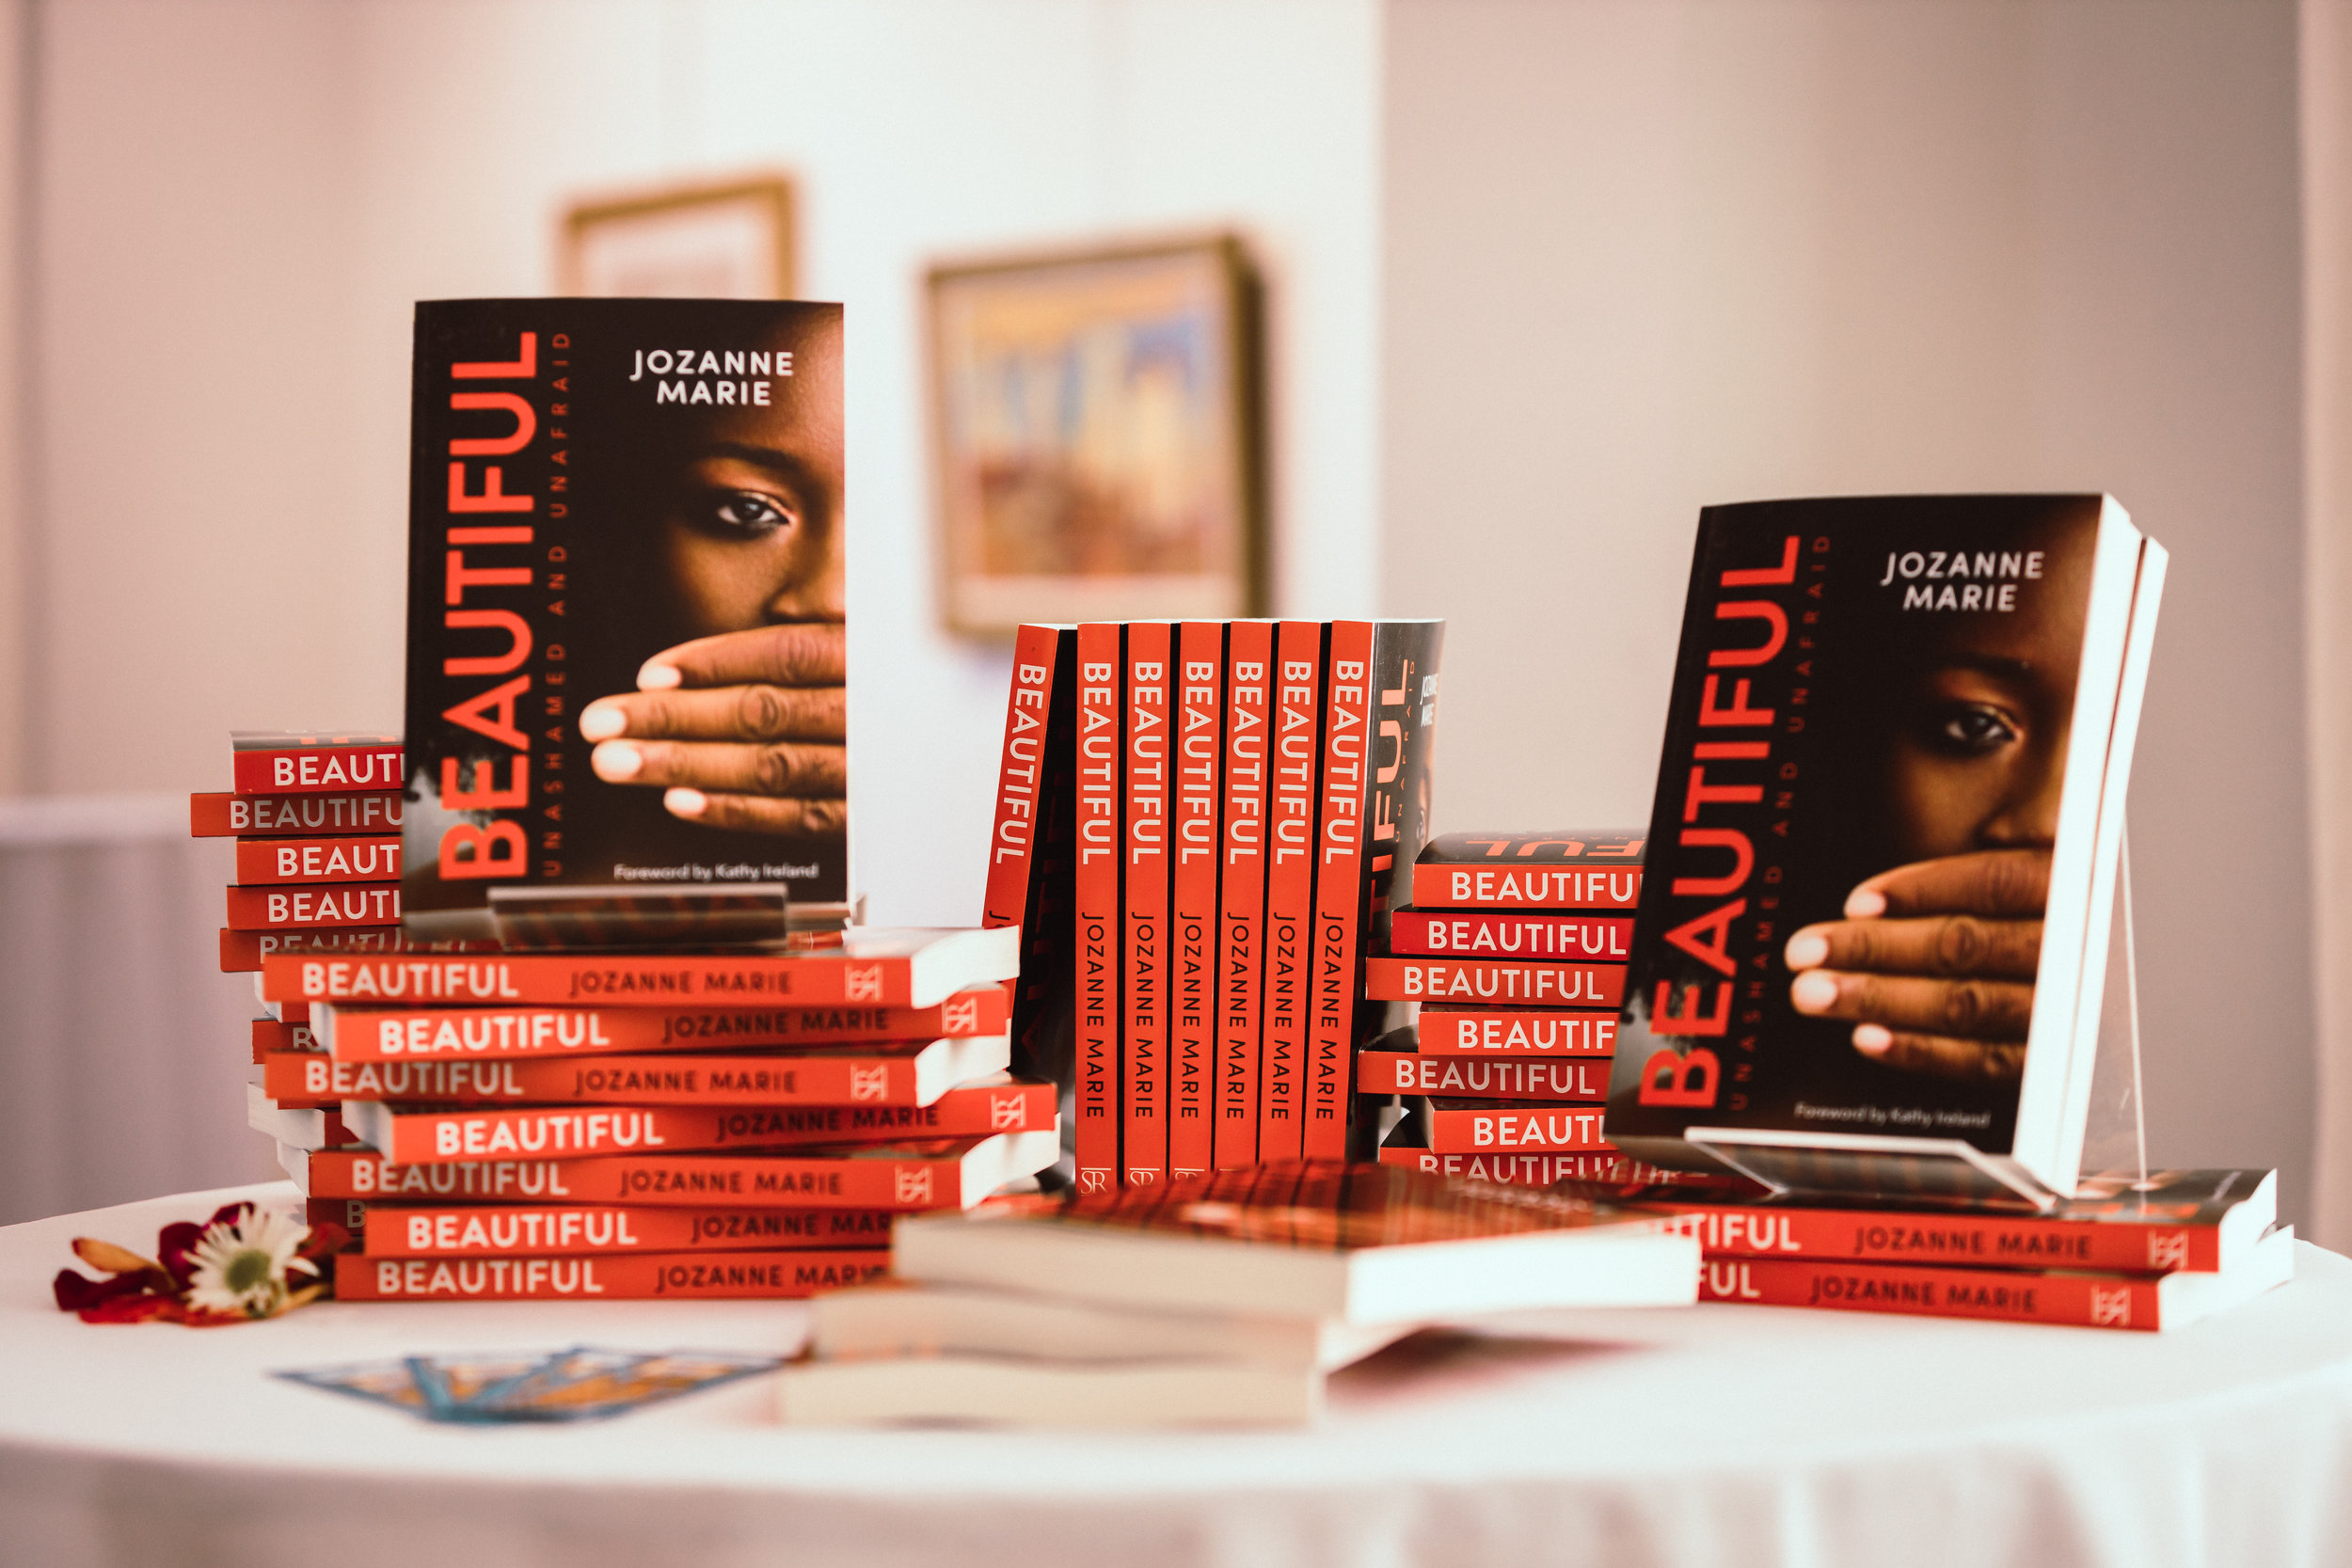 Beautiful: Unashamed, Unafraid - Beautiful is one woman's courageous spiritual journey to self-love and healing after a childhood of sexual and physical abuse.